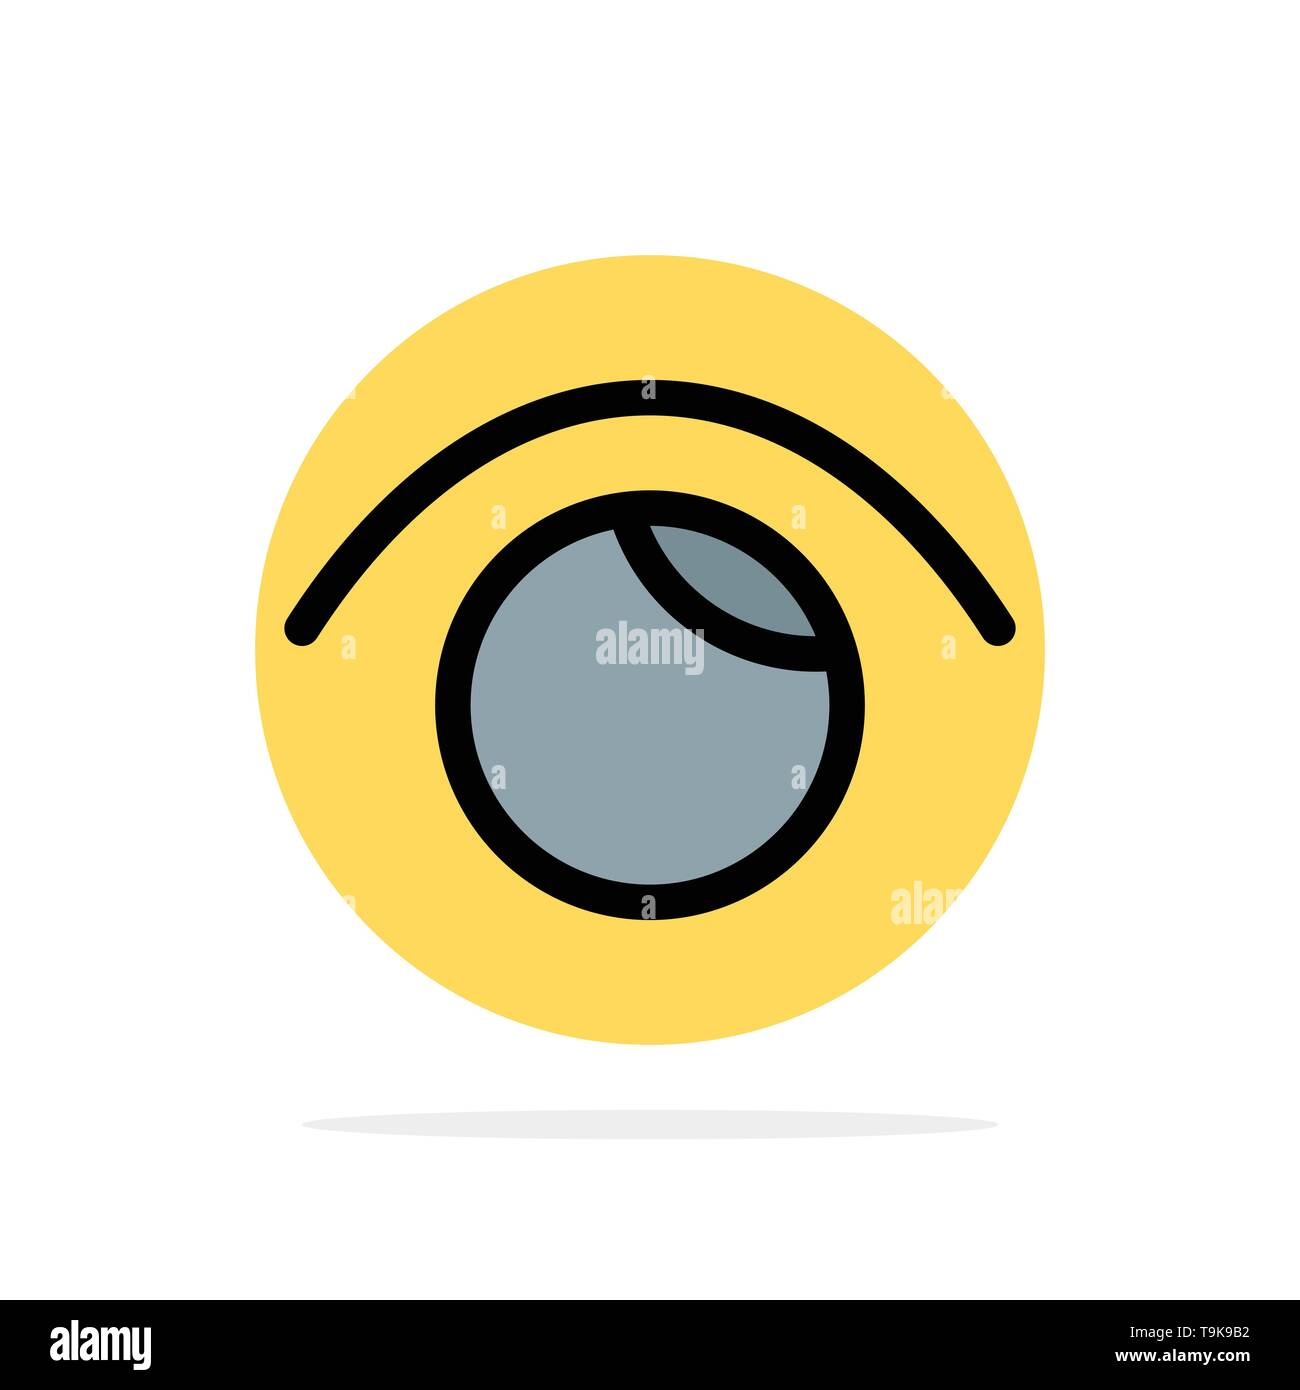 Eye, View, Watch, Twitter Abstract Circle Background Flat color Icon - Stock Image